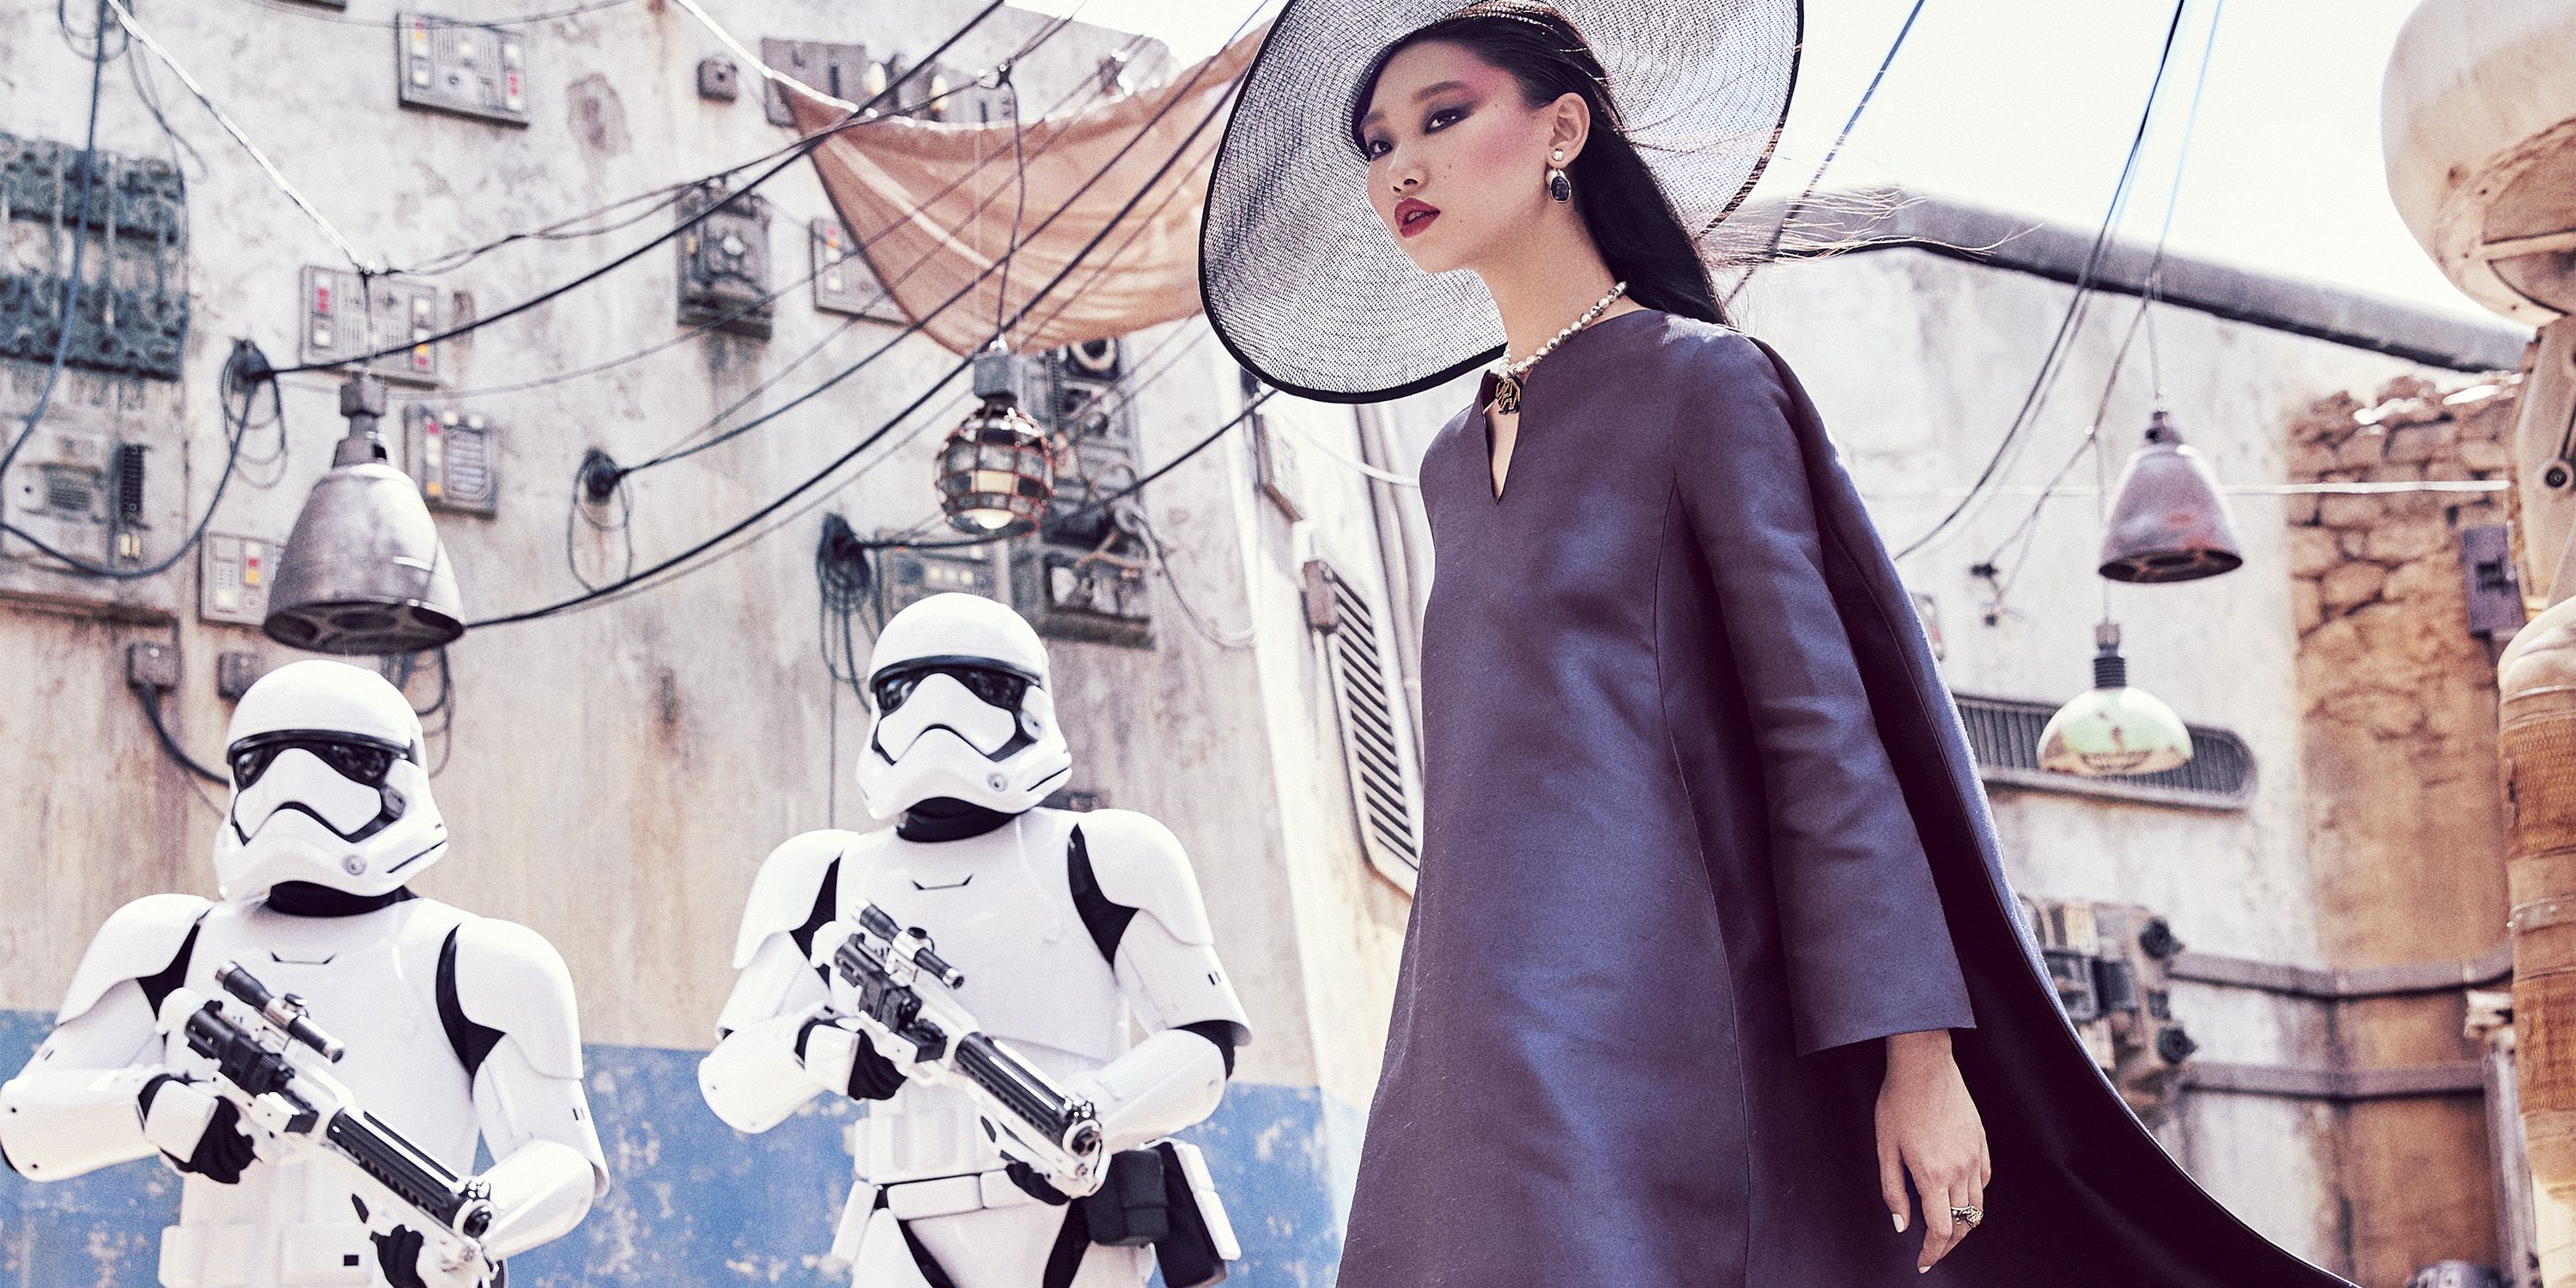 Disney World's New Star Wars Attraction Gets the High Fashion Treatment